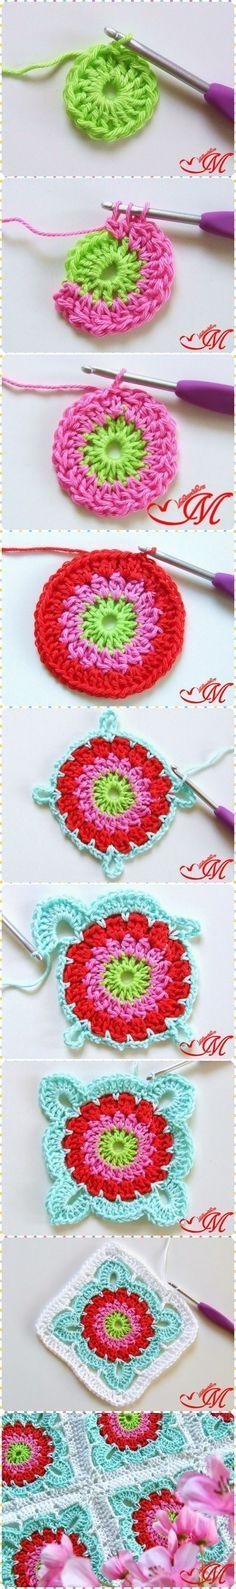 How to Crochet Pretty Granny Square Blanket with Free Pattern. Love the colors…